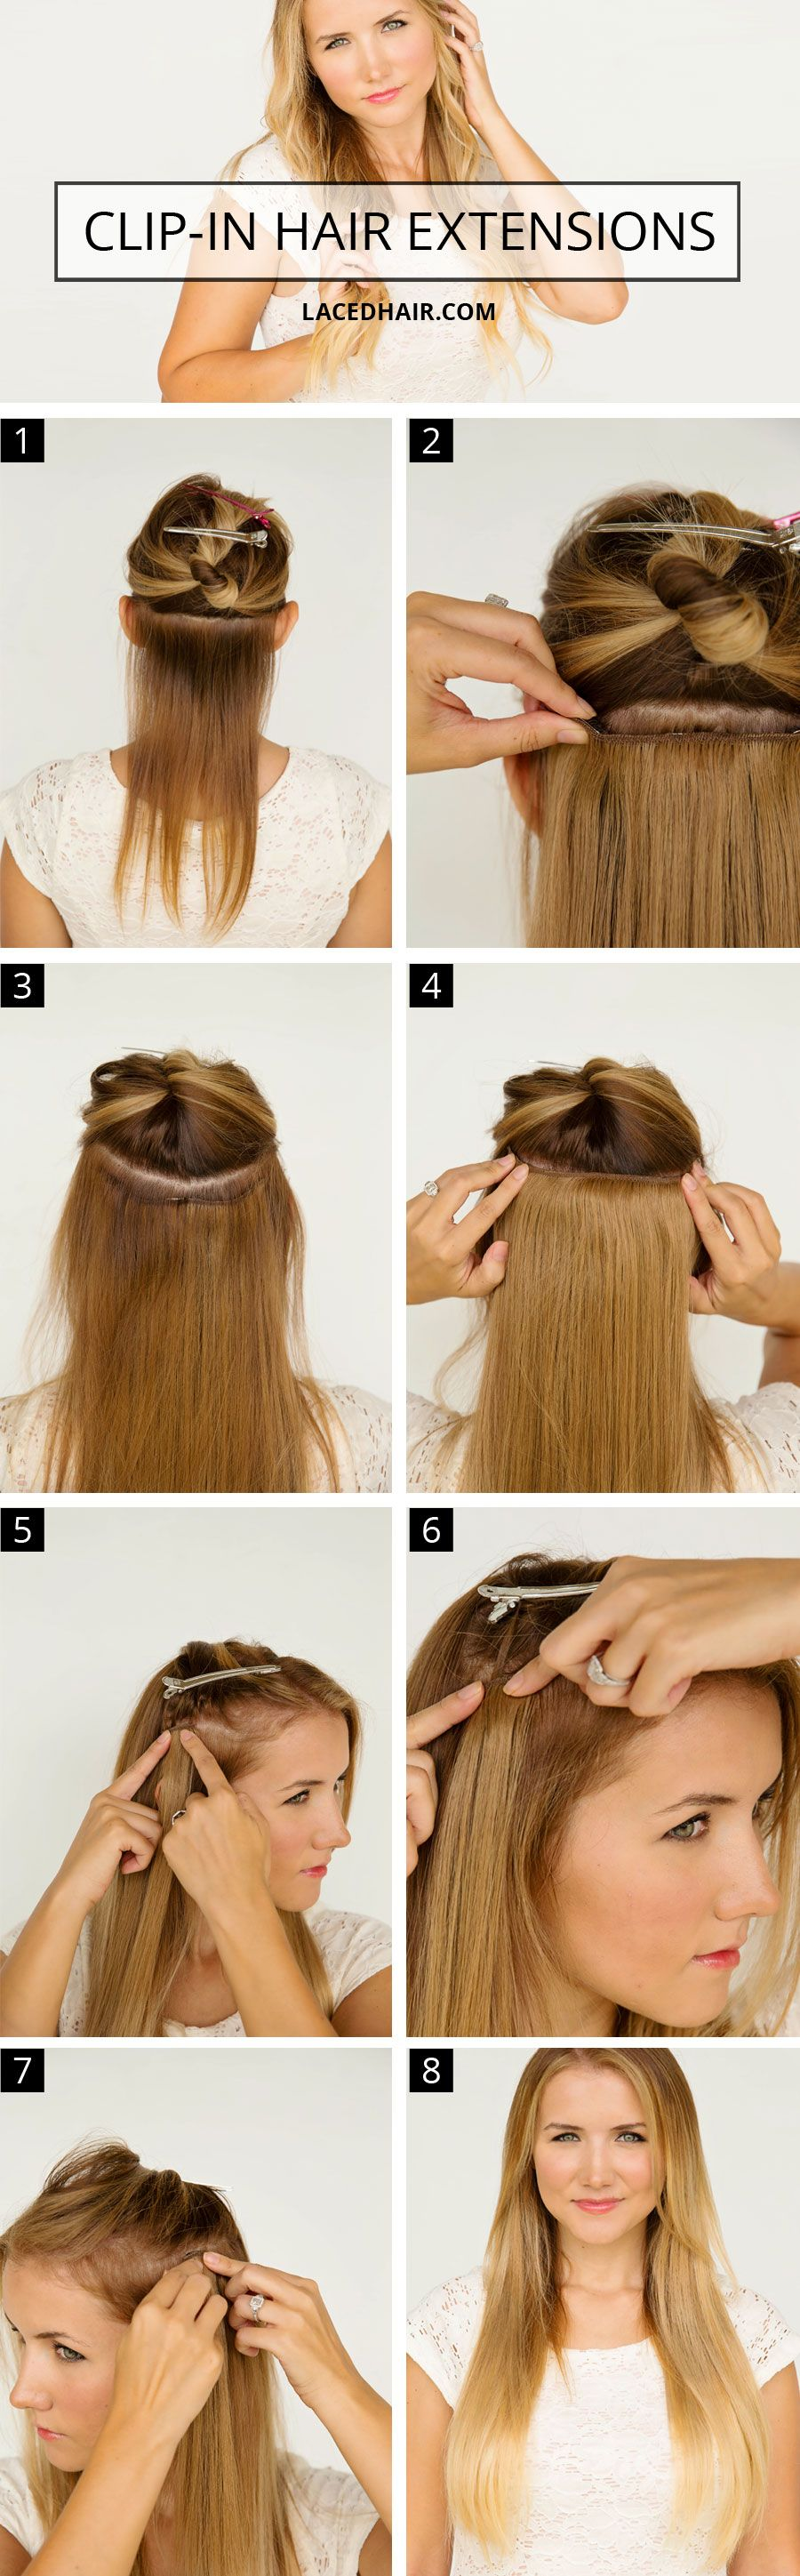 How To Wear Clip In Hair Extensions Diy Hair Extensions Hair Extensions For Short Hair Hair Extensions Tutorial